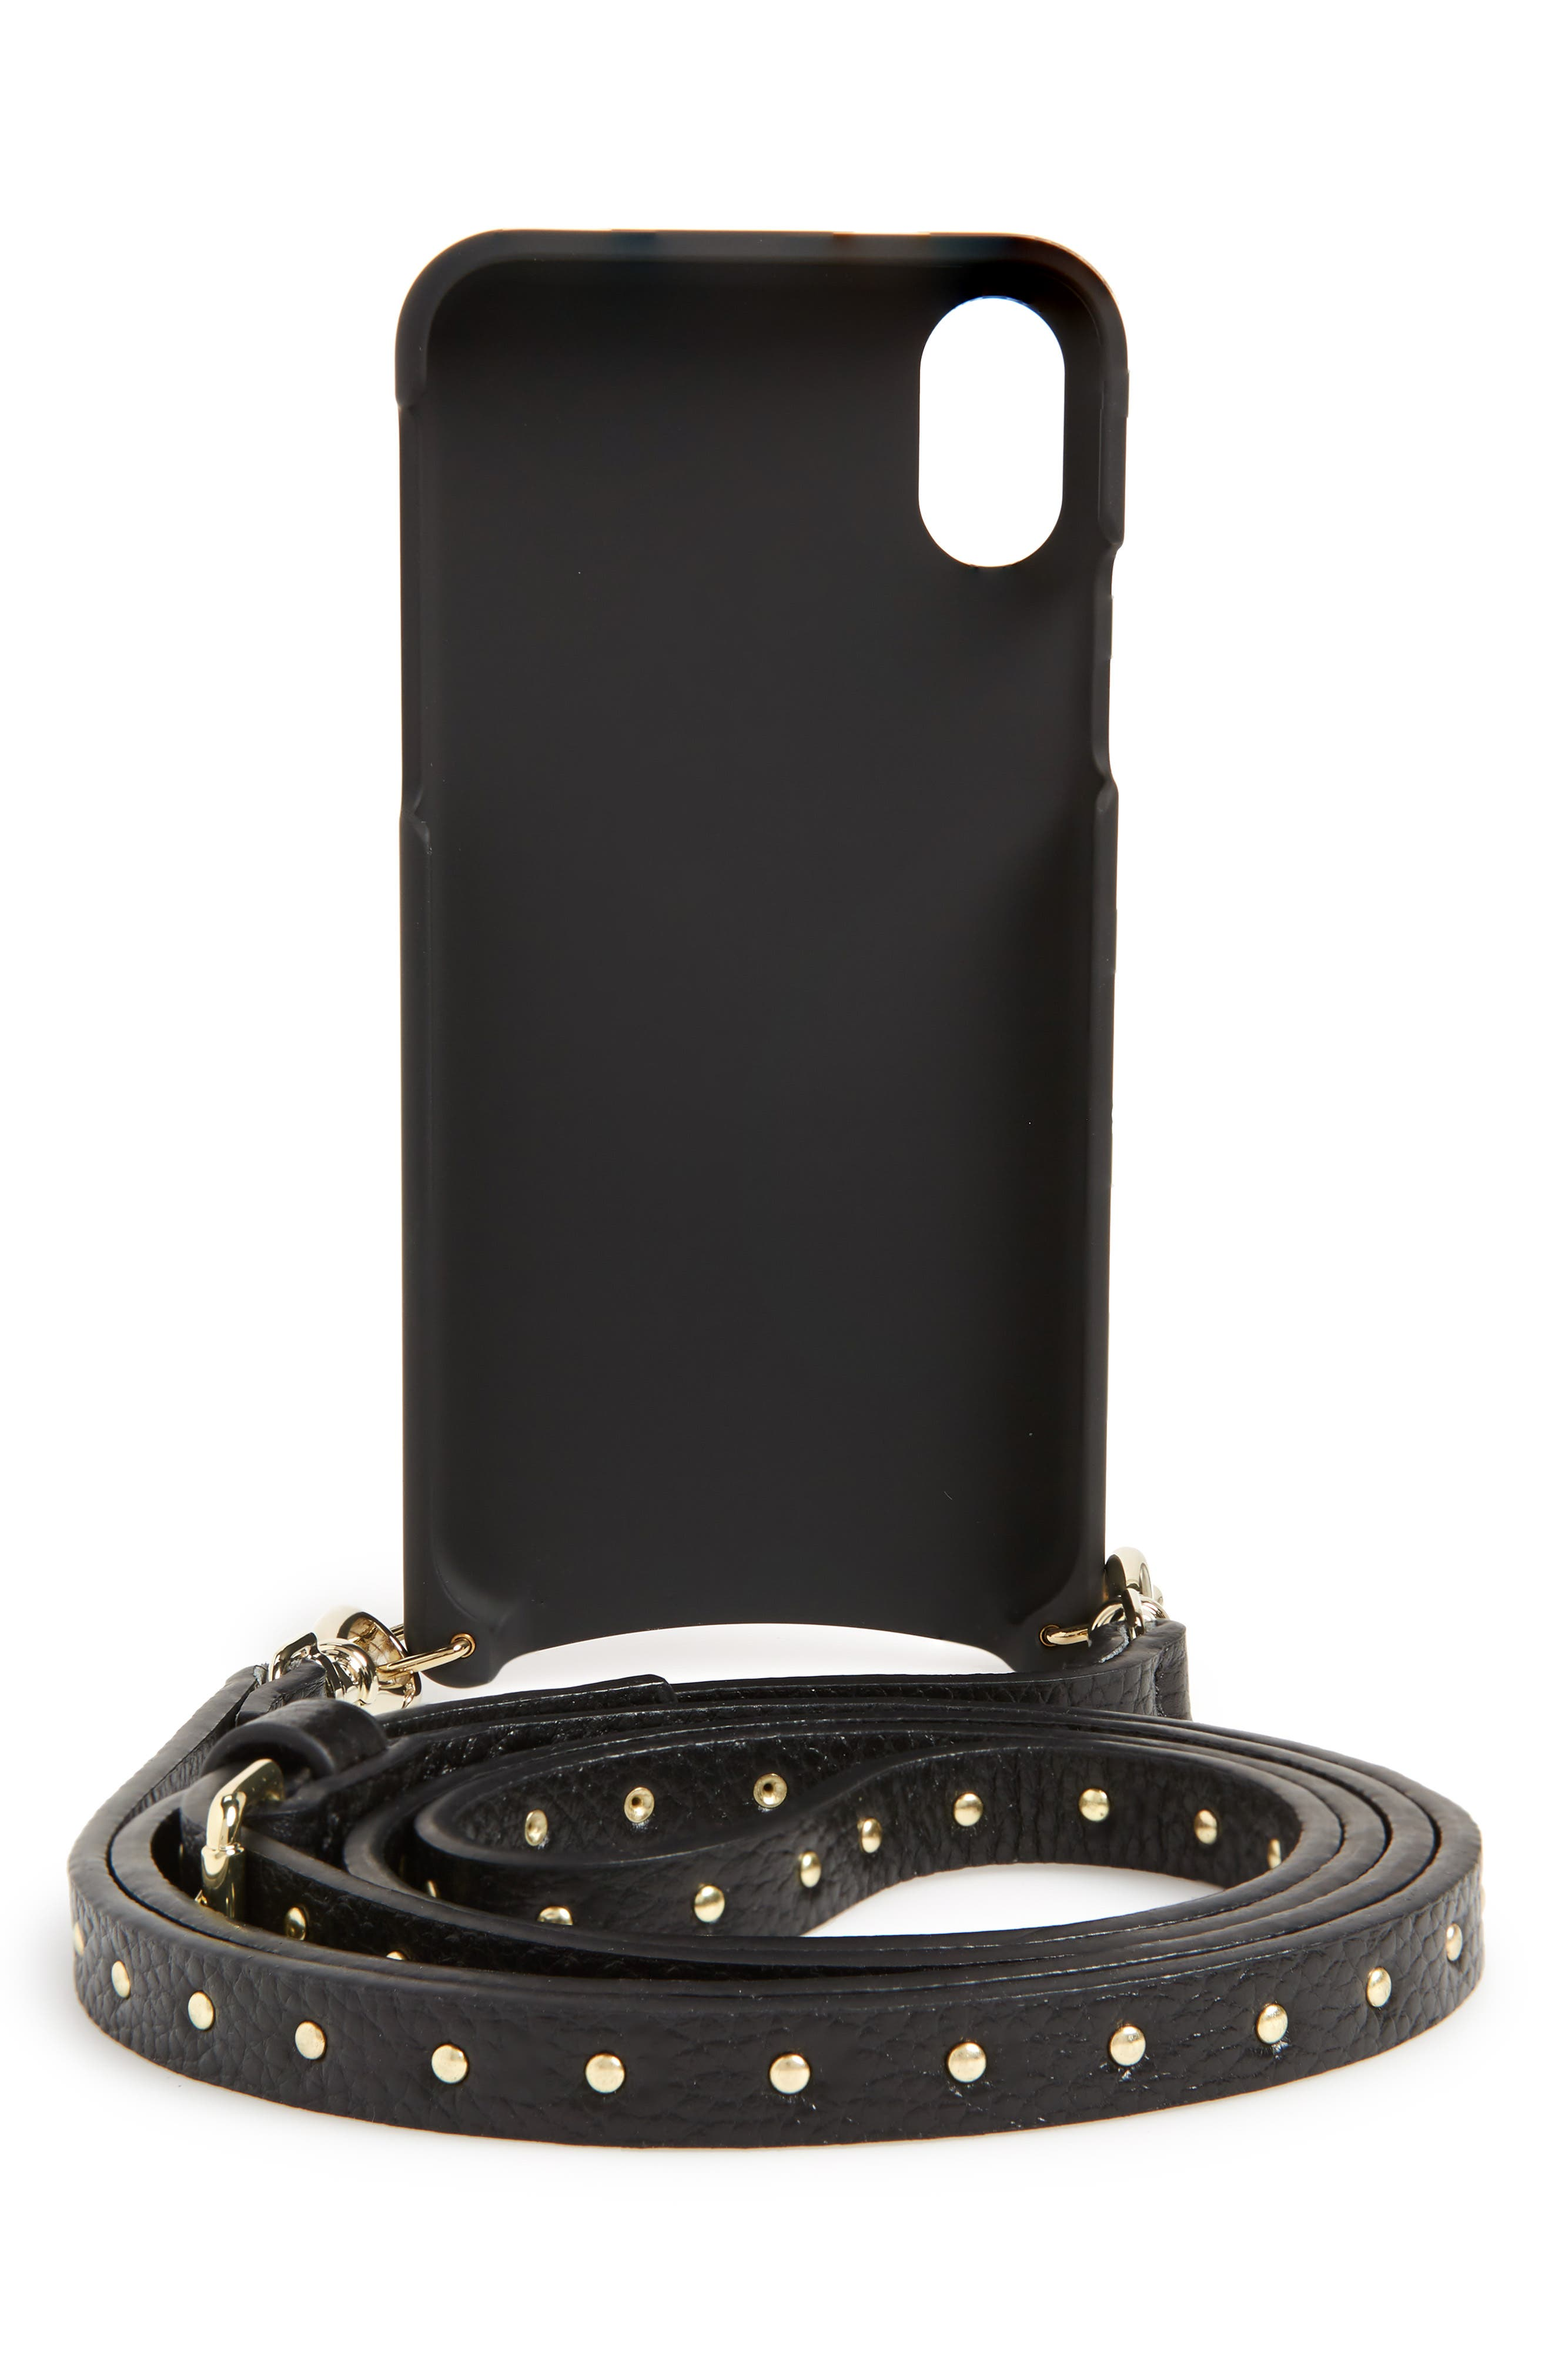 Nicole Pebbled Leather 6/7/8 & 6/7/8 Plus Crossbody Case,                             Alternate thumbnail 3, color,                             BLACK/ GOLD